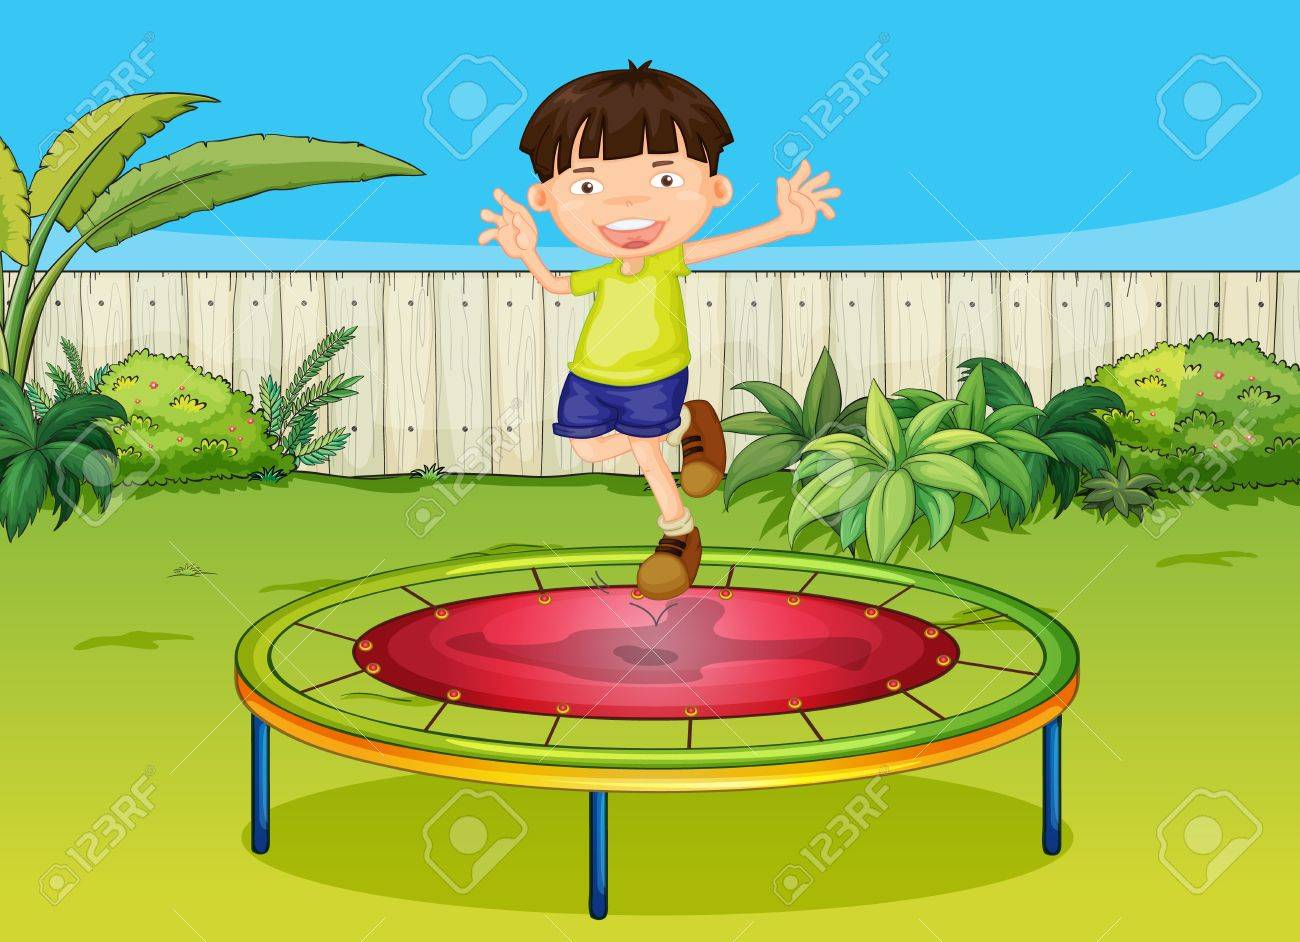 Illustration of a boy jumoing on a trampoline in a beautiful garden Stock Vector - 17161740